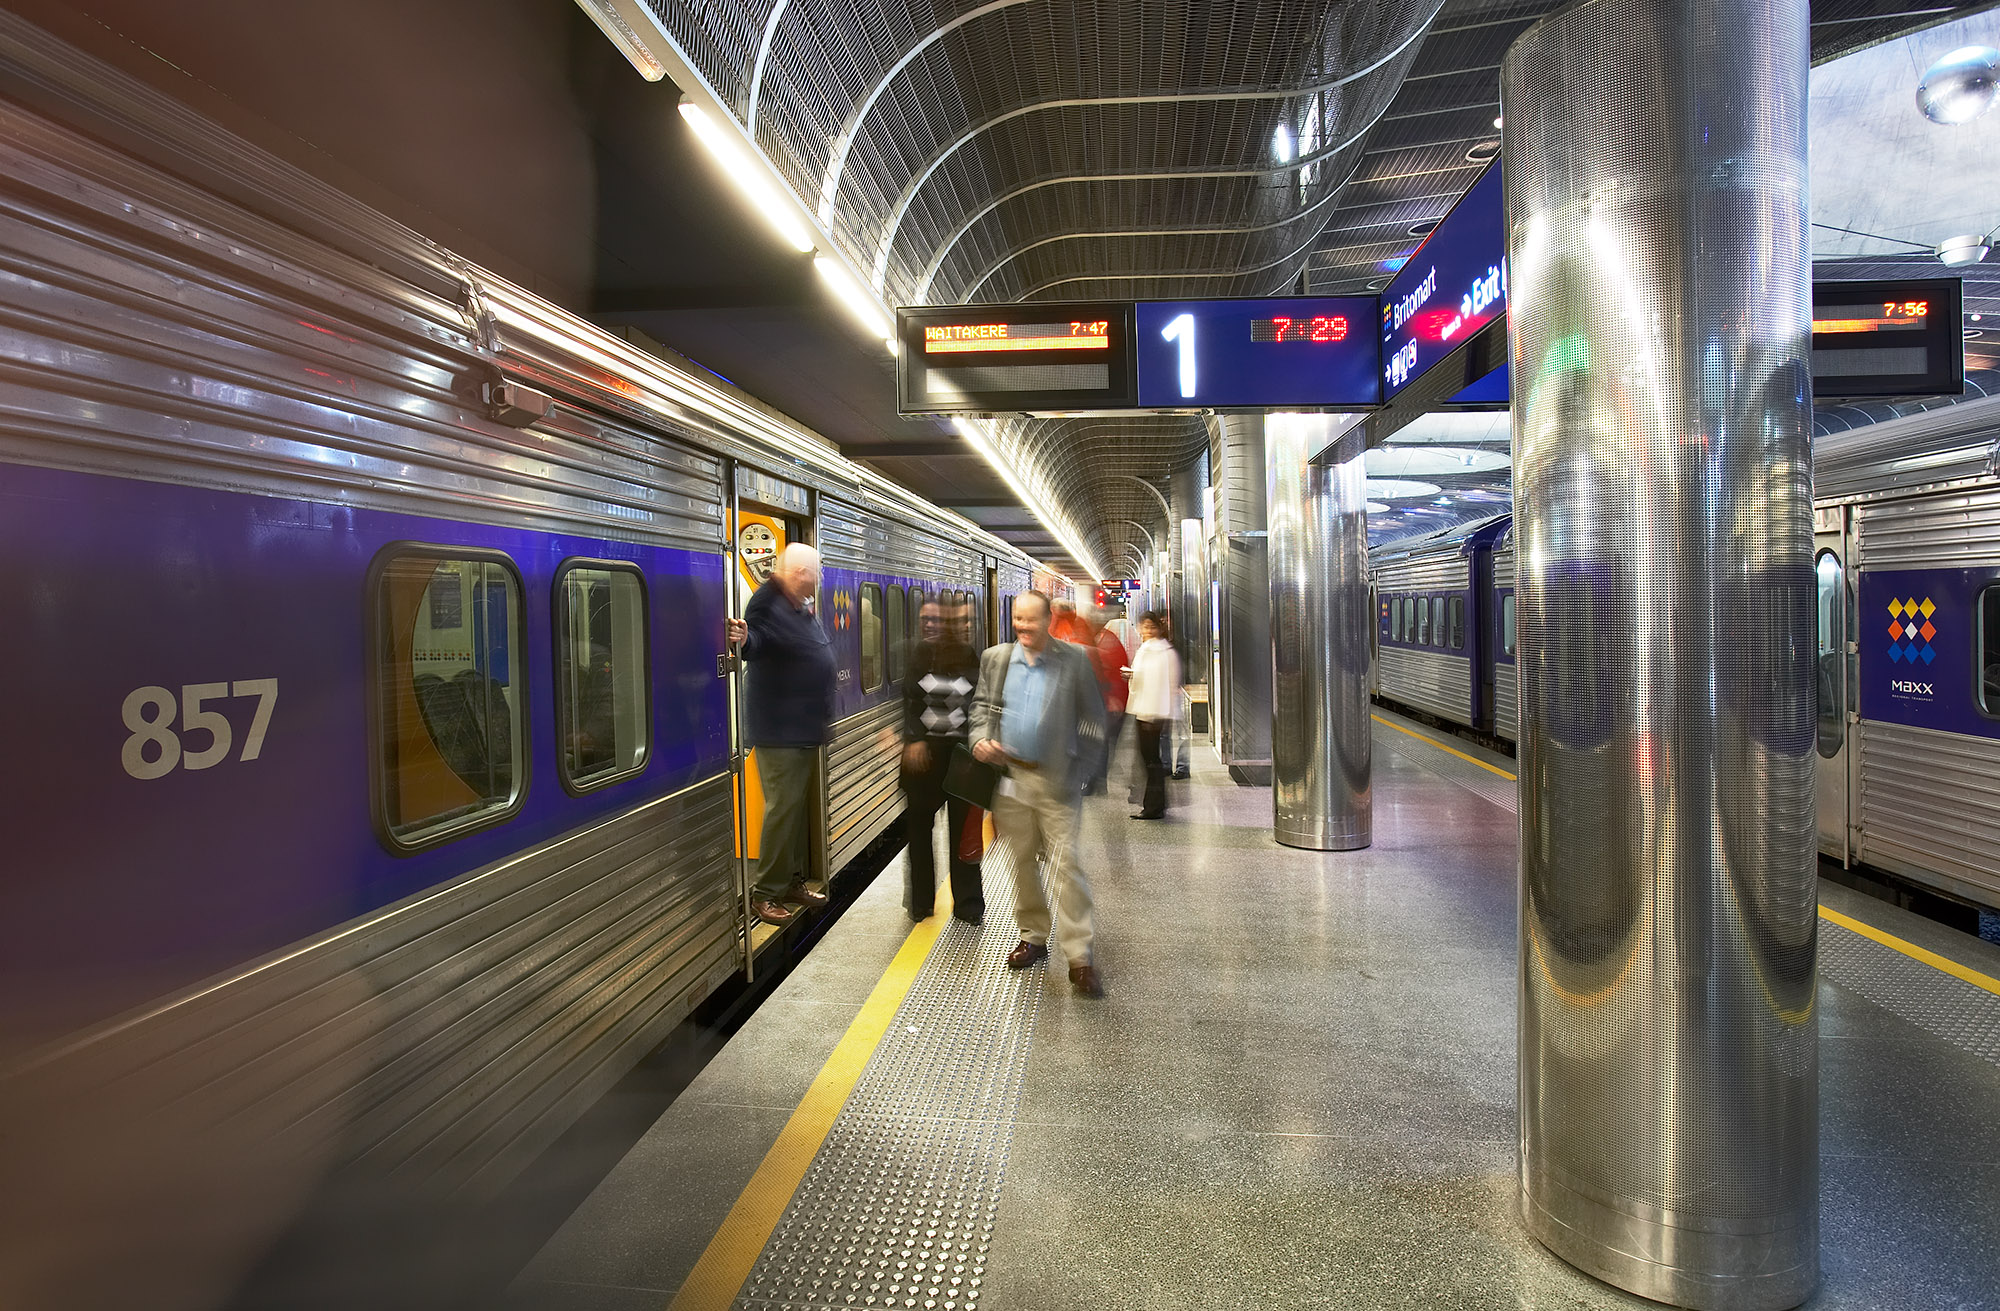 Passengers on platform at Britomart Station with man on left exiting a train